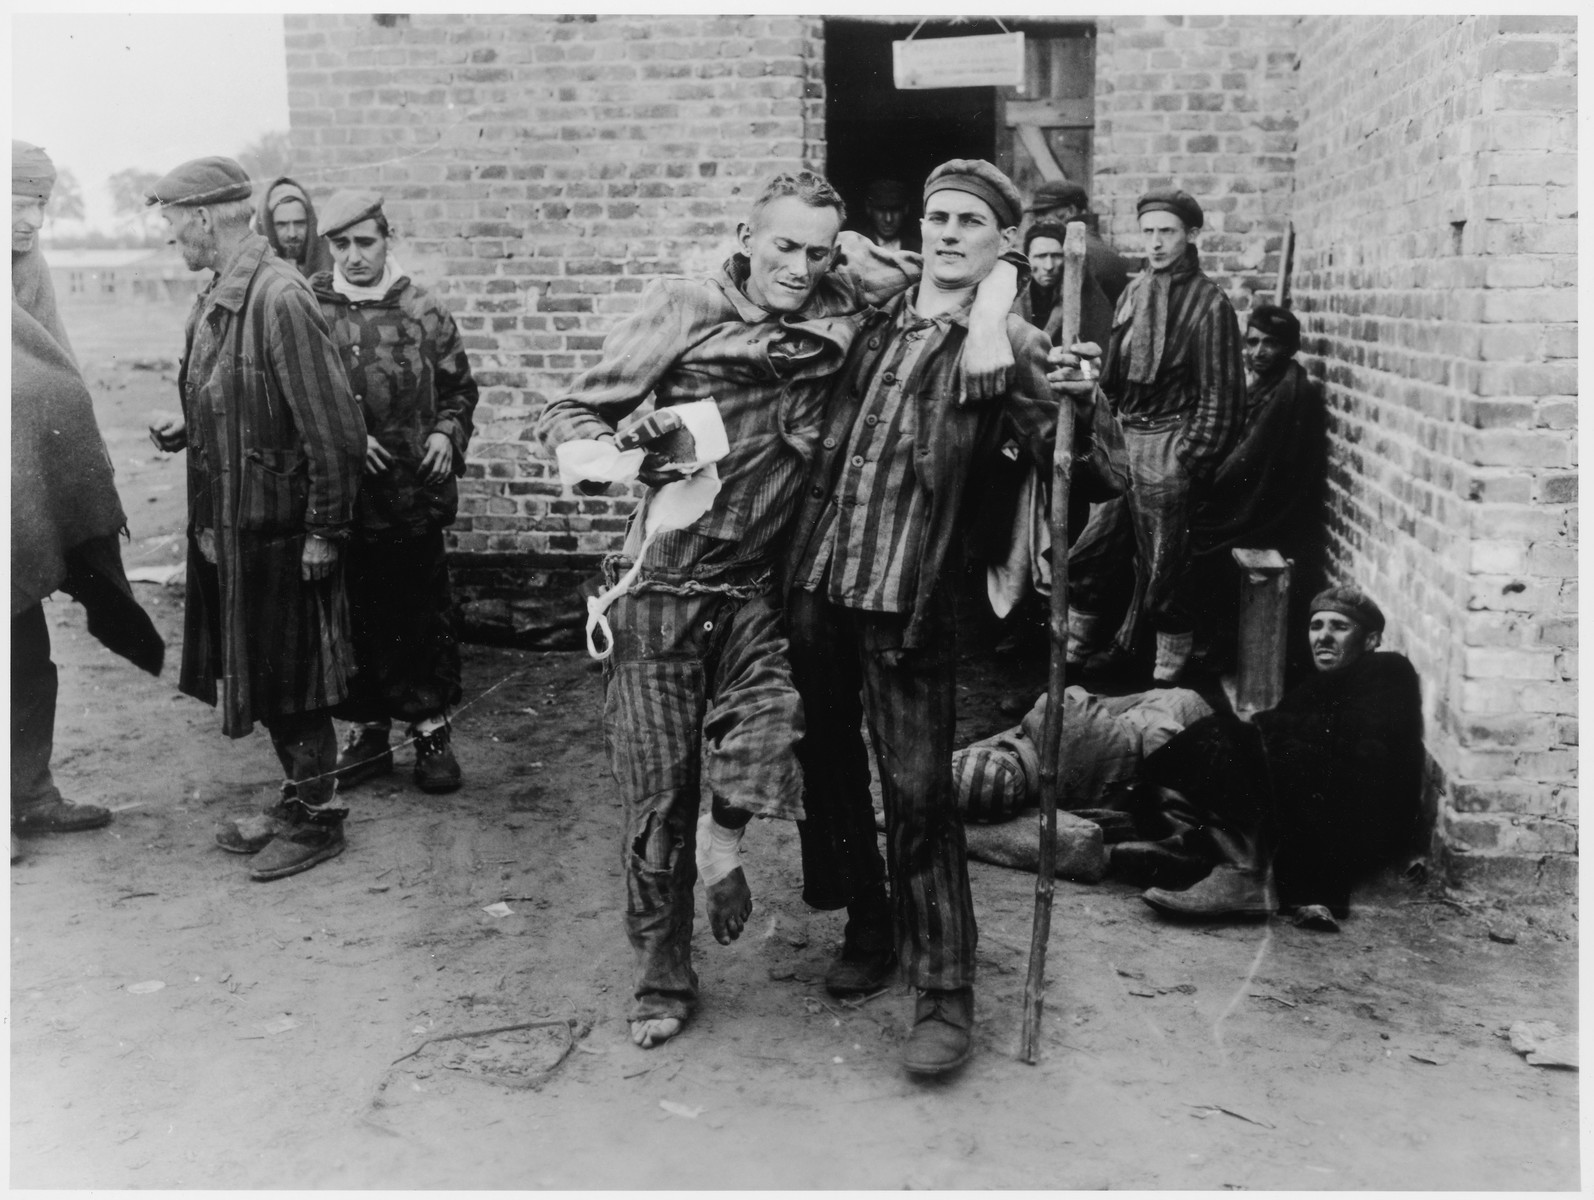 "Enfeebled survivors of the Woebbelin concentration camp await transportation to hospitals for medical attention.  Original Caption: ""The capture of the town of Wobbelin, Germany, by troops of the 82nd Airborne Division, US Ninth Army, exposed the atrocities perpetrated in the concentration camp there. Here, former prisoners of the camp wait to be taken by truck to hospitals for medical attention. One of them is so weak from malnutrition that he can only stand by making use of his fellow victims as a prop."""